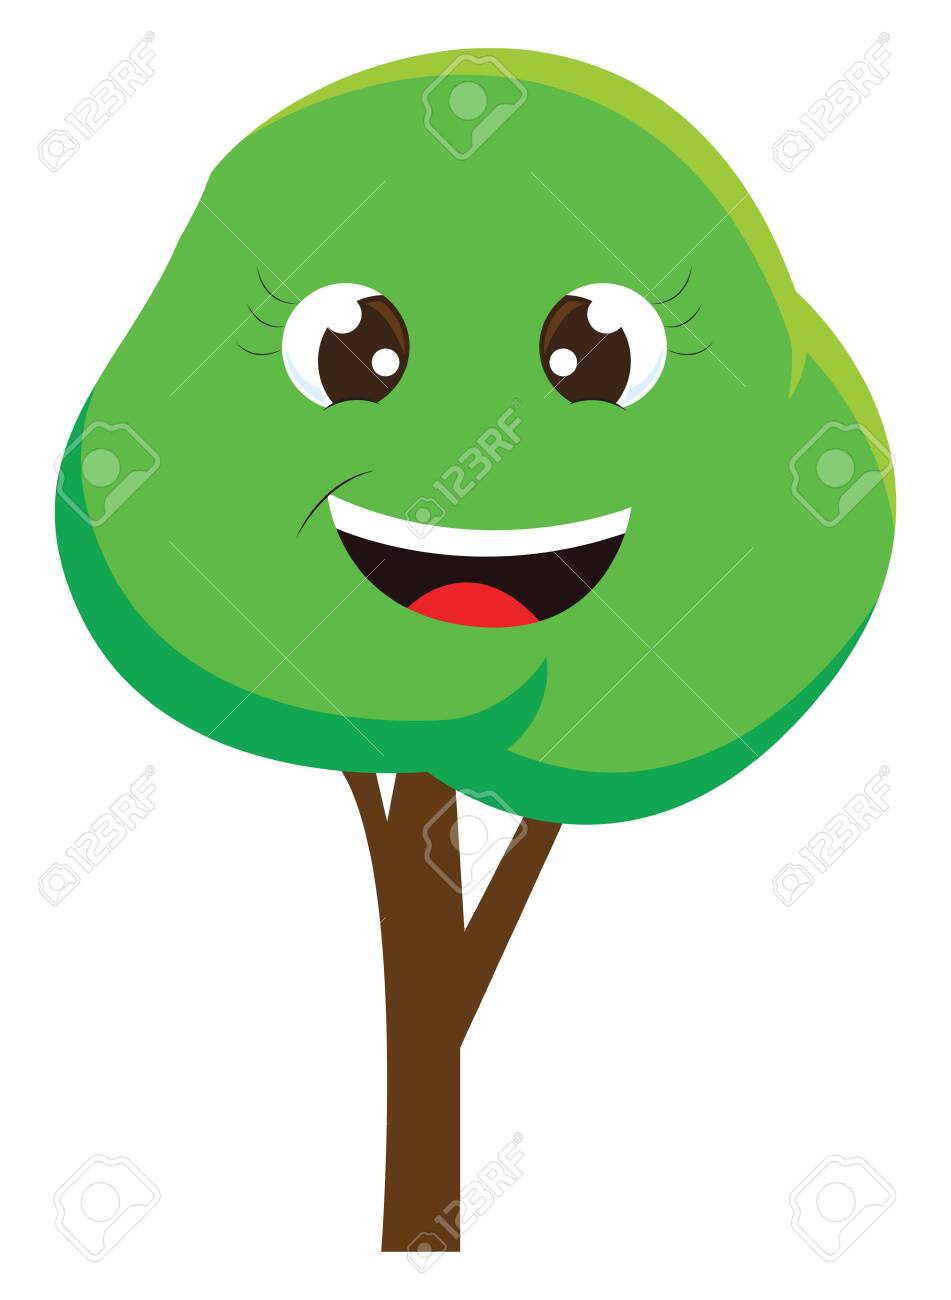 A Cartoon Of A Happy Tree With Big Eyes Vector Color Drawing Royalty Free Cliparts Vectors And Stock Illustration Image 132776715 ✓ free for commercial use ✓ high quality images. 123rf com